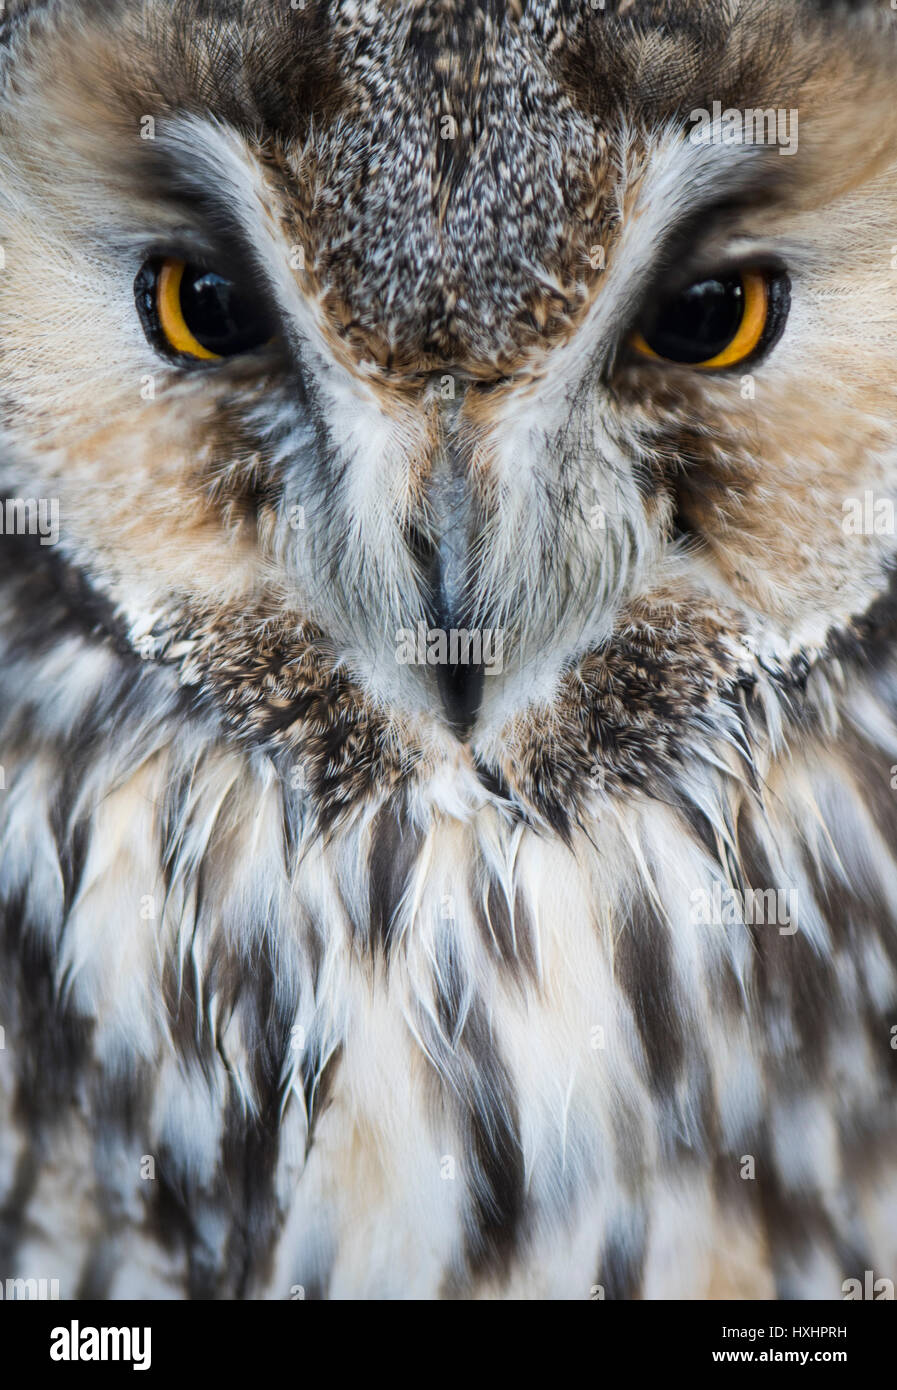 Pretty Owl - Stock Image